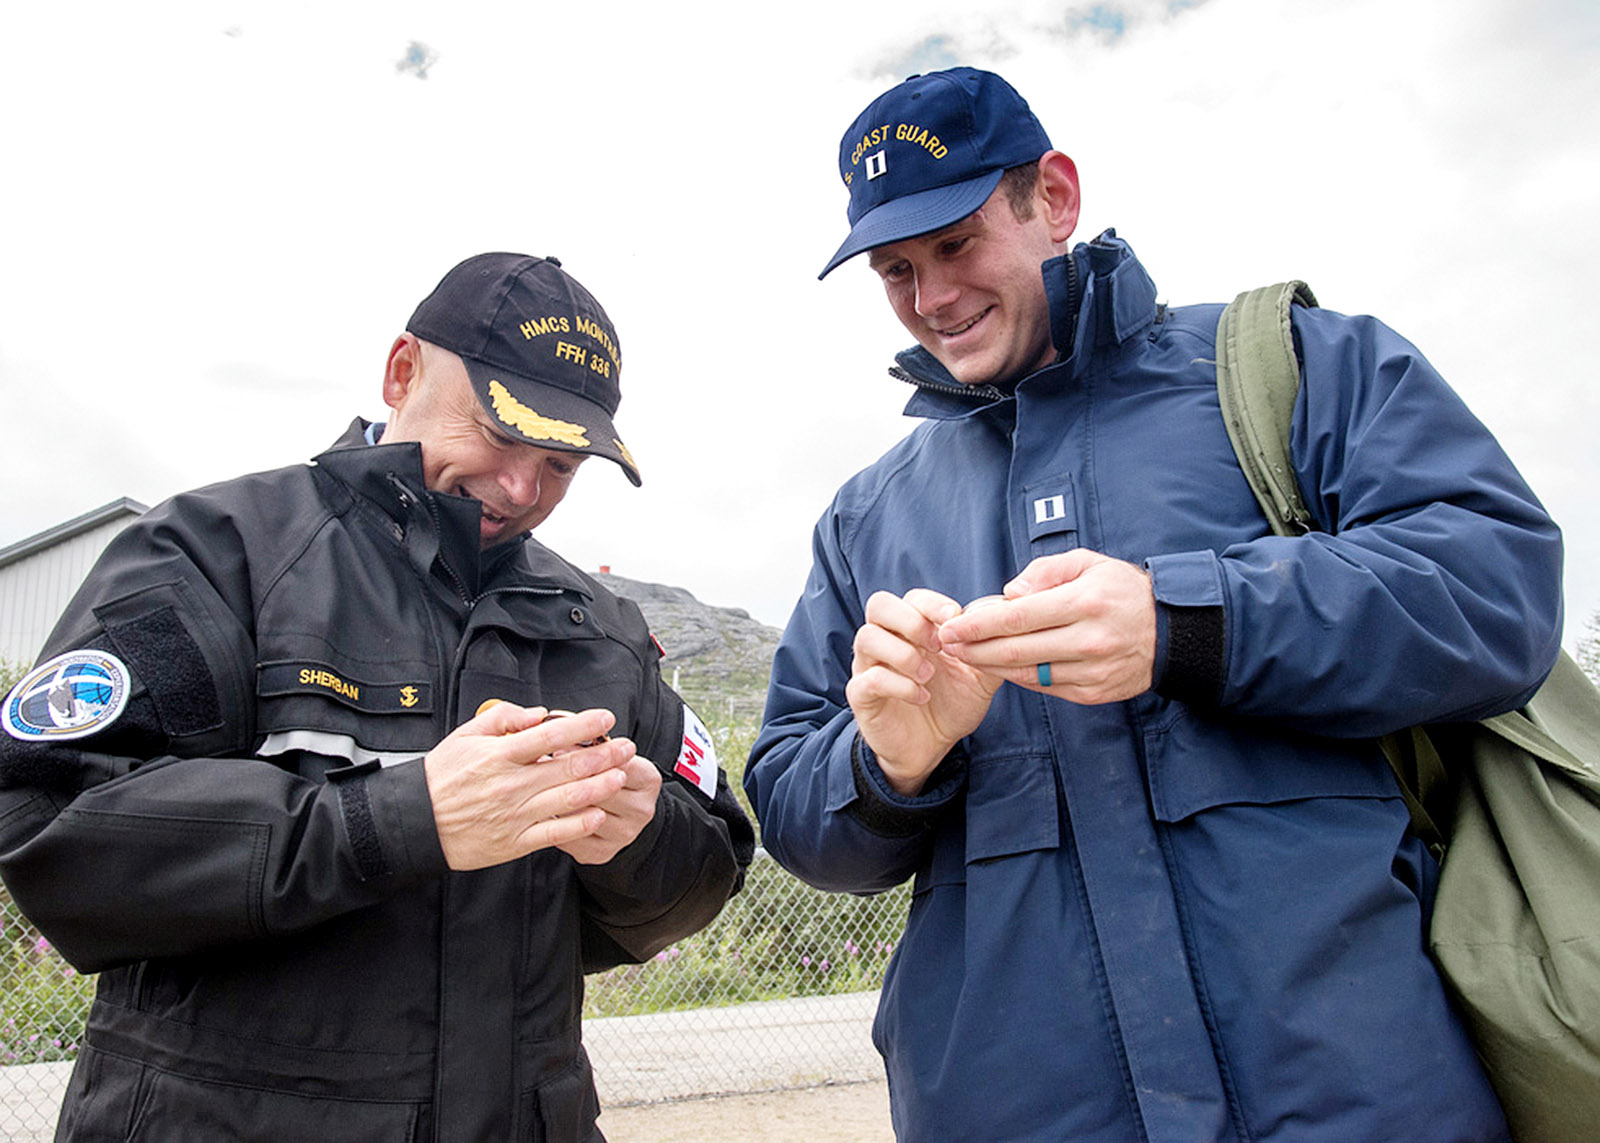 Commander Chris Sherban, left, Commanding Officer of HMCS Montréal, exchanges a coin with a member of the United States Coast Guard in Nain, Labrador.